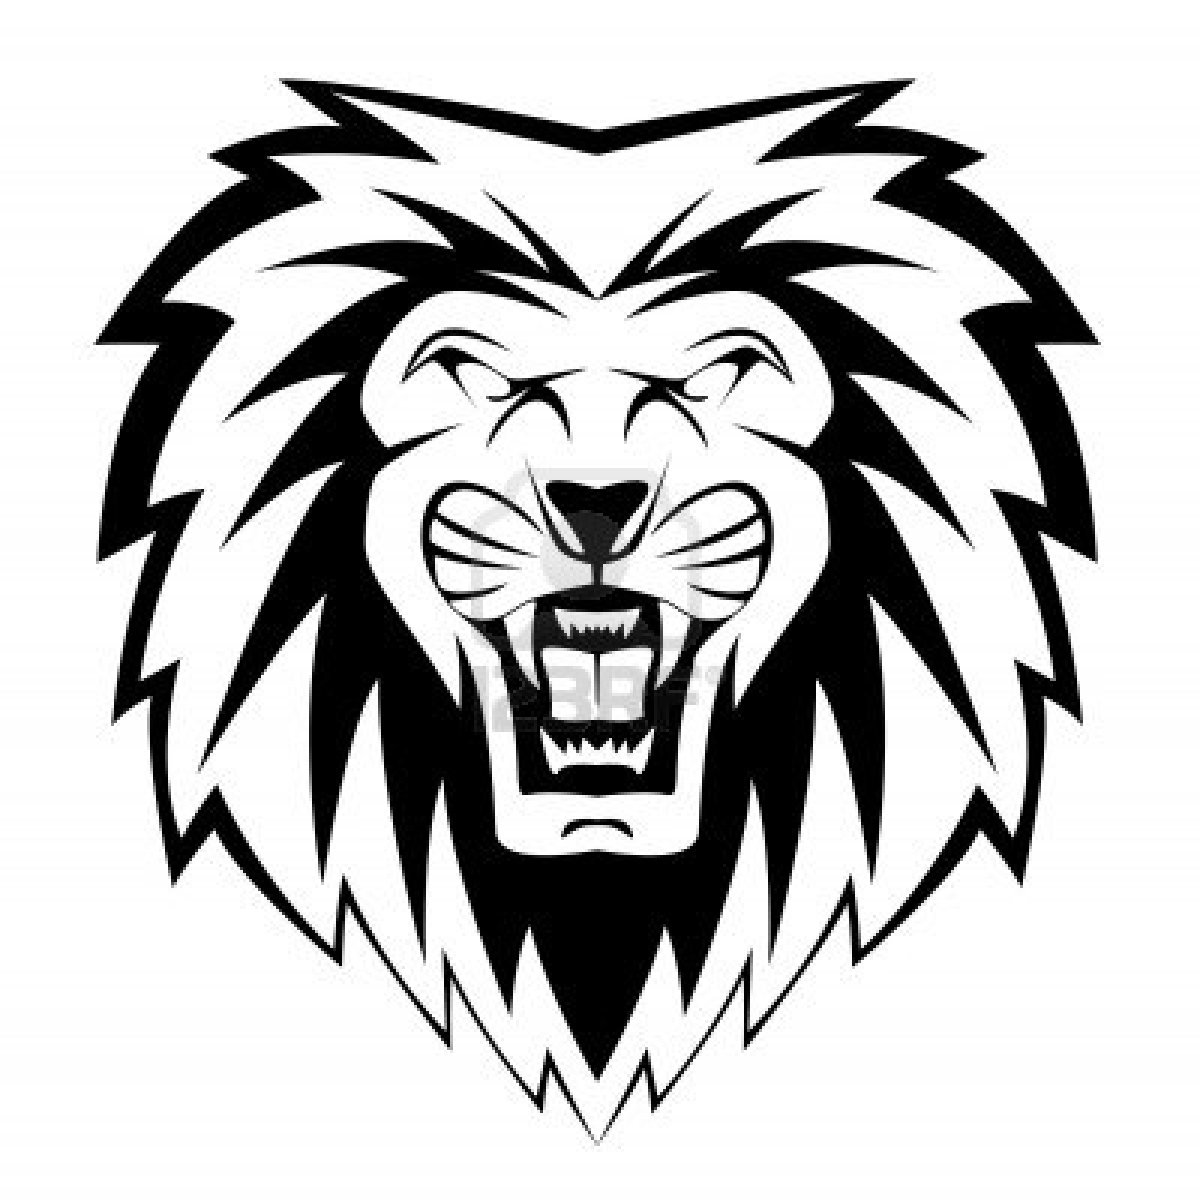 Roaring Lion Clip Art Black And White Coloriages à Imprimer Lion Numéro 64697